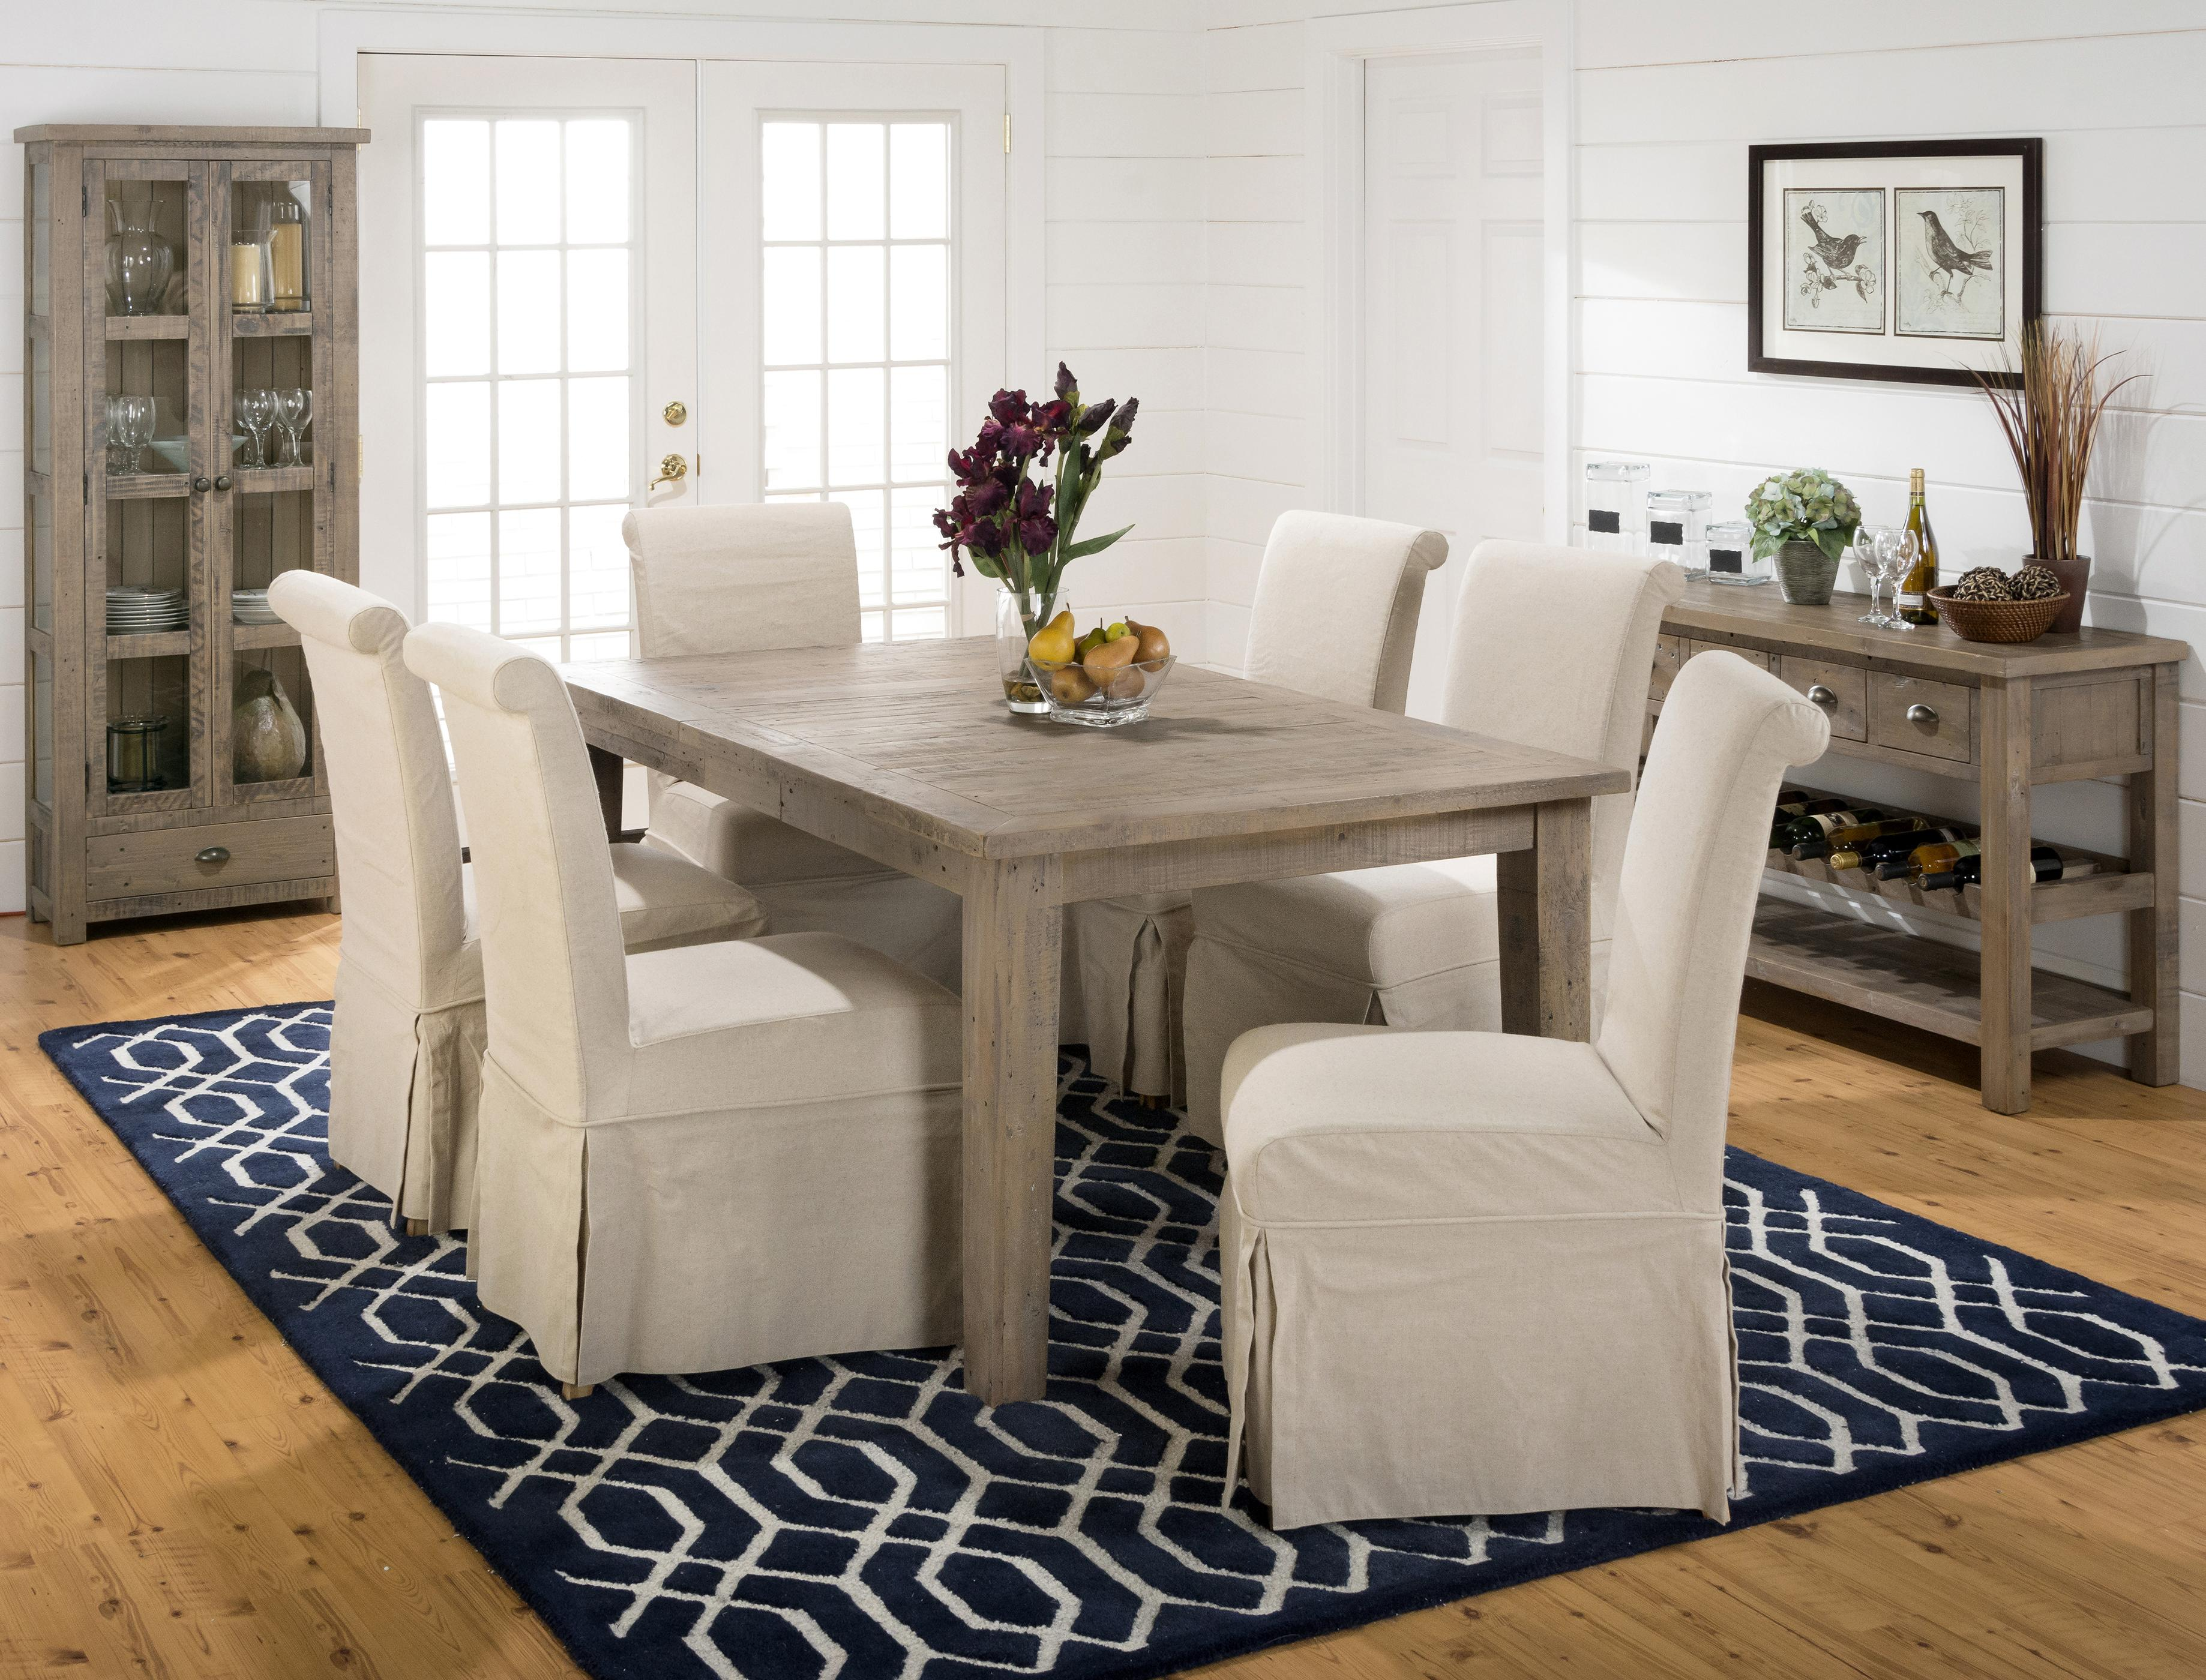 Jofran Bancroft Mills Casual Dining Room Group - Item Number: 941 Dining Room Group 1